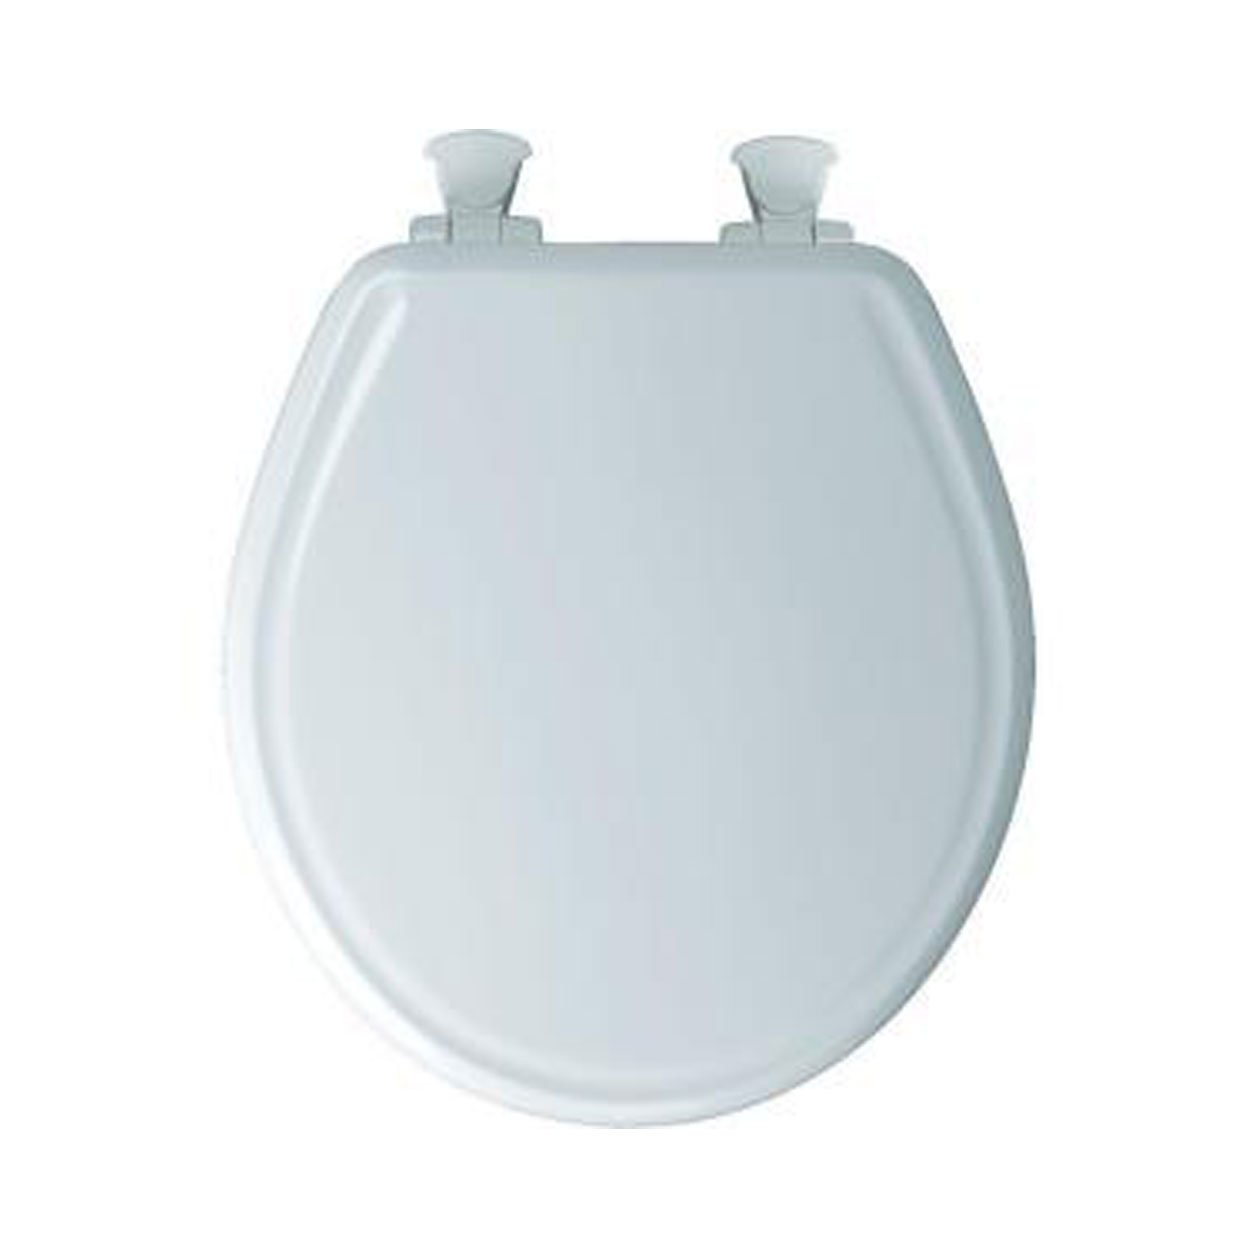 Bemis 600E3 000 Adjustable StaTite Round-front Toilet Seat with Whisper Close, White